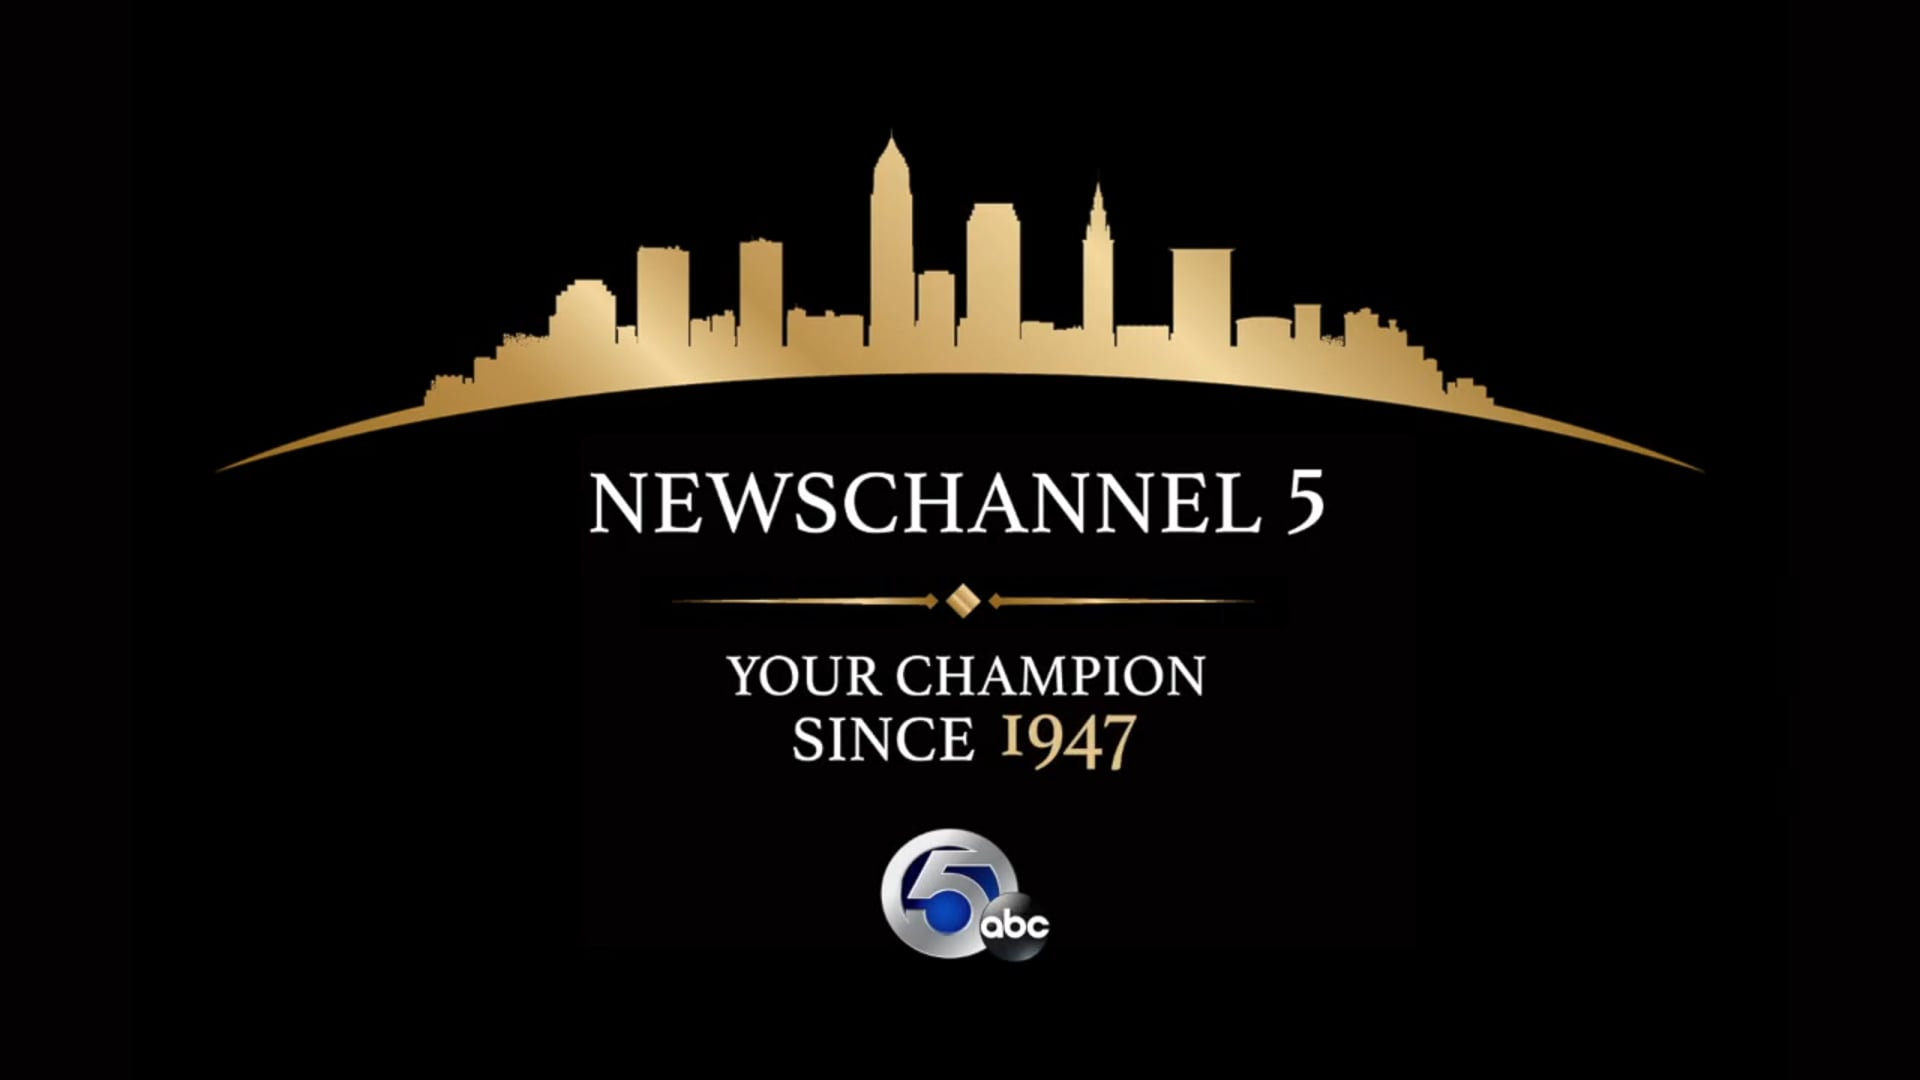 All In - NewsChannel 5 Is Your Champion